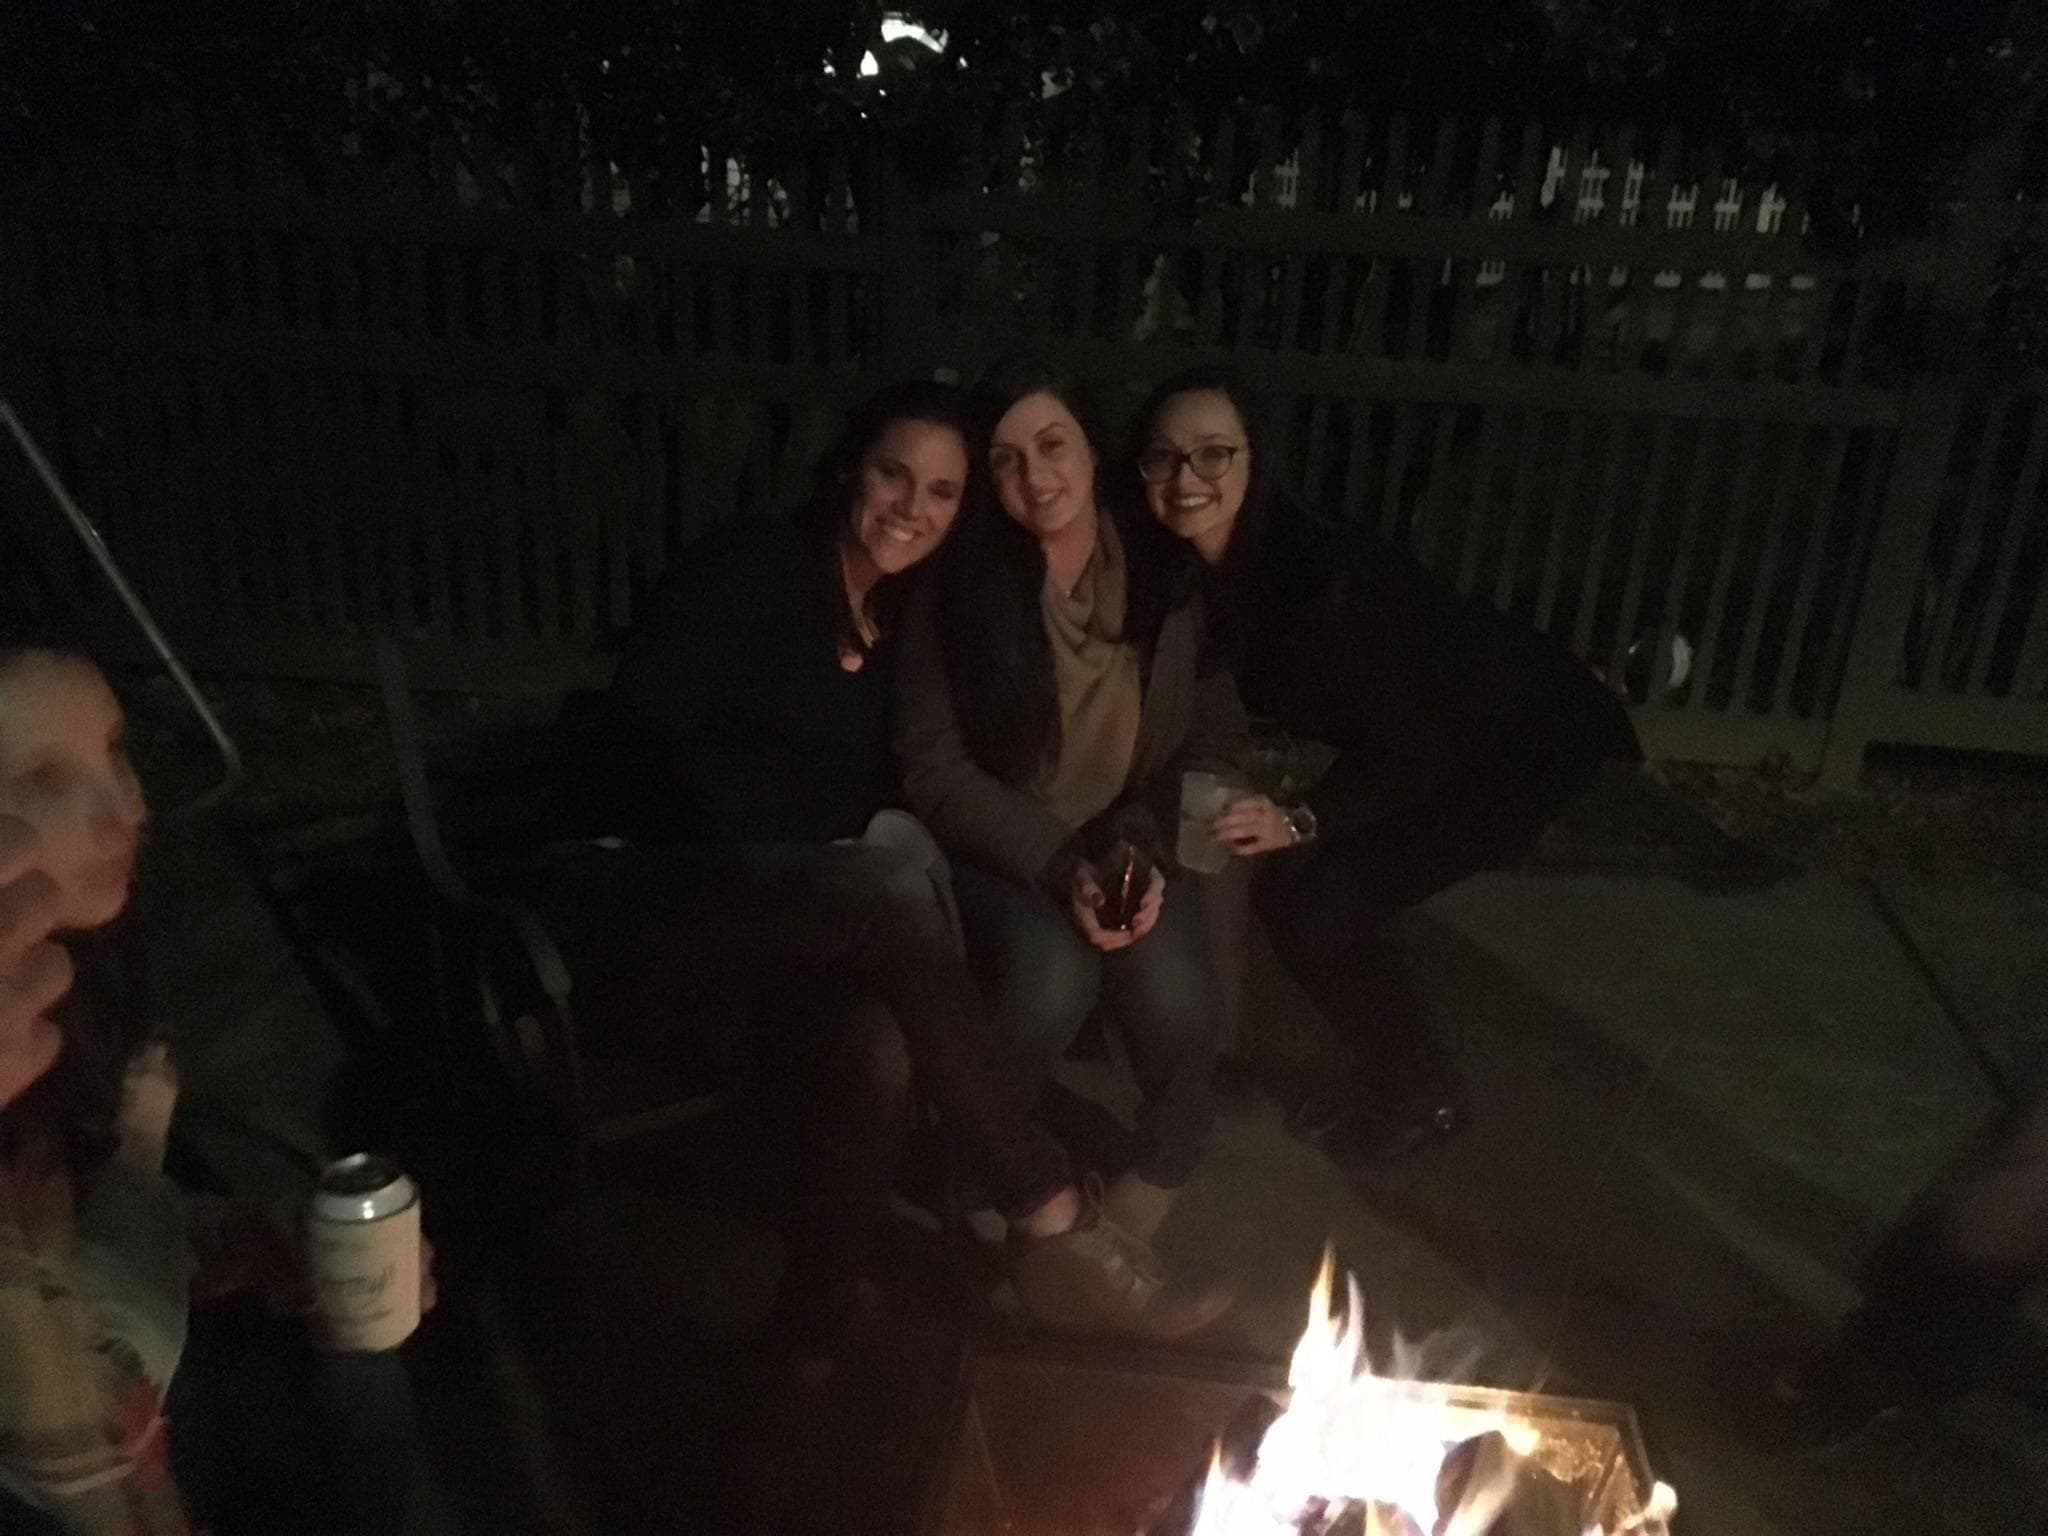 Gina Levtov and friends by the fire